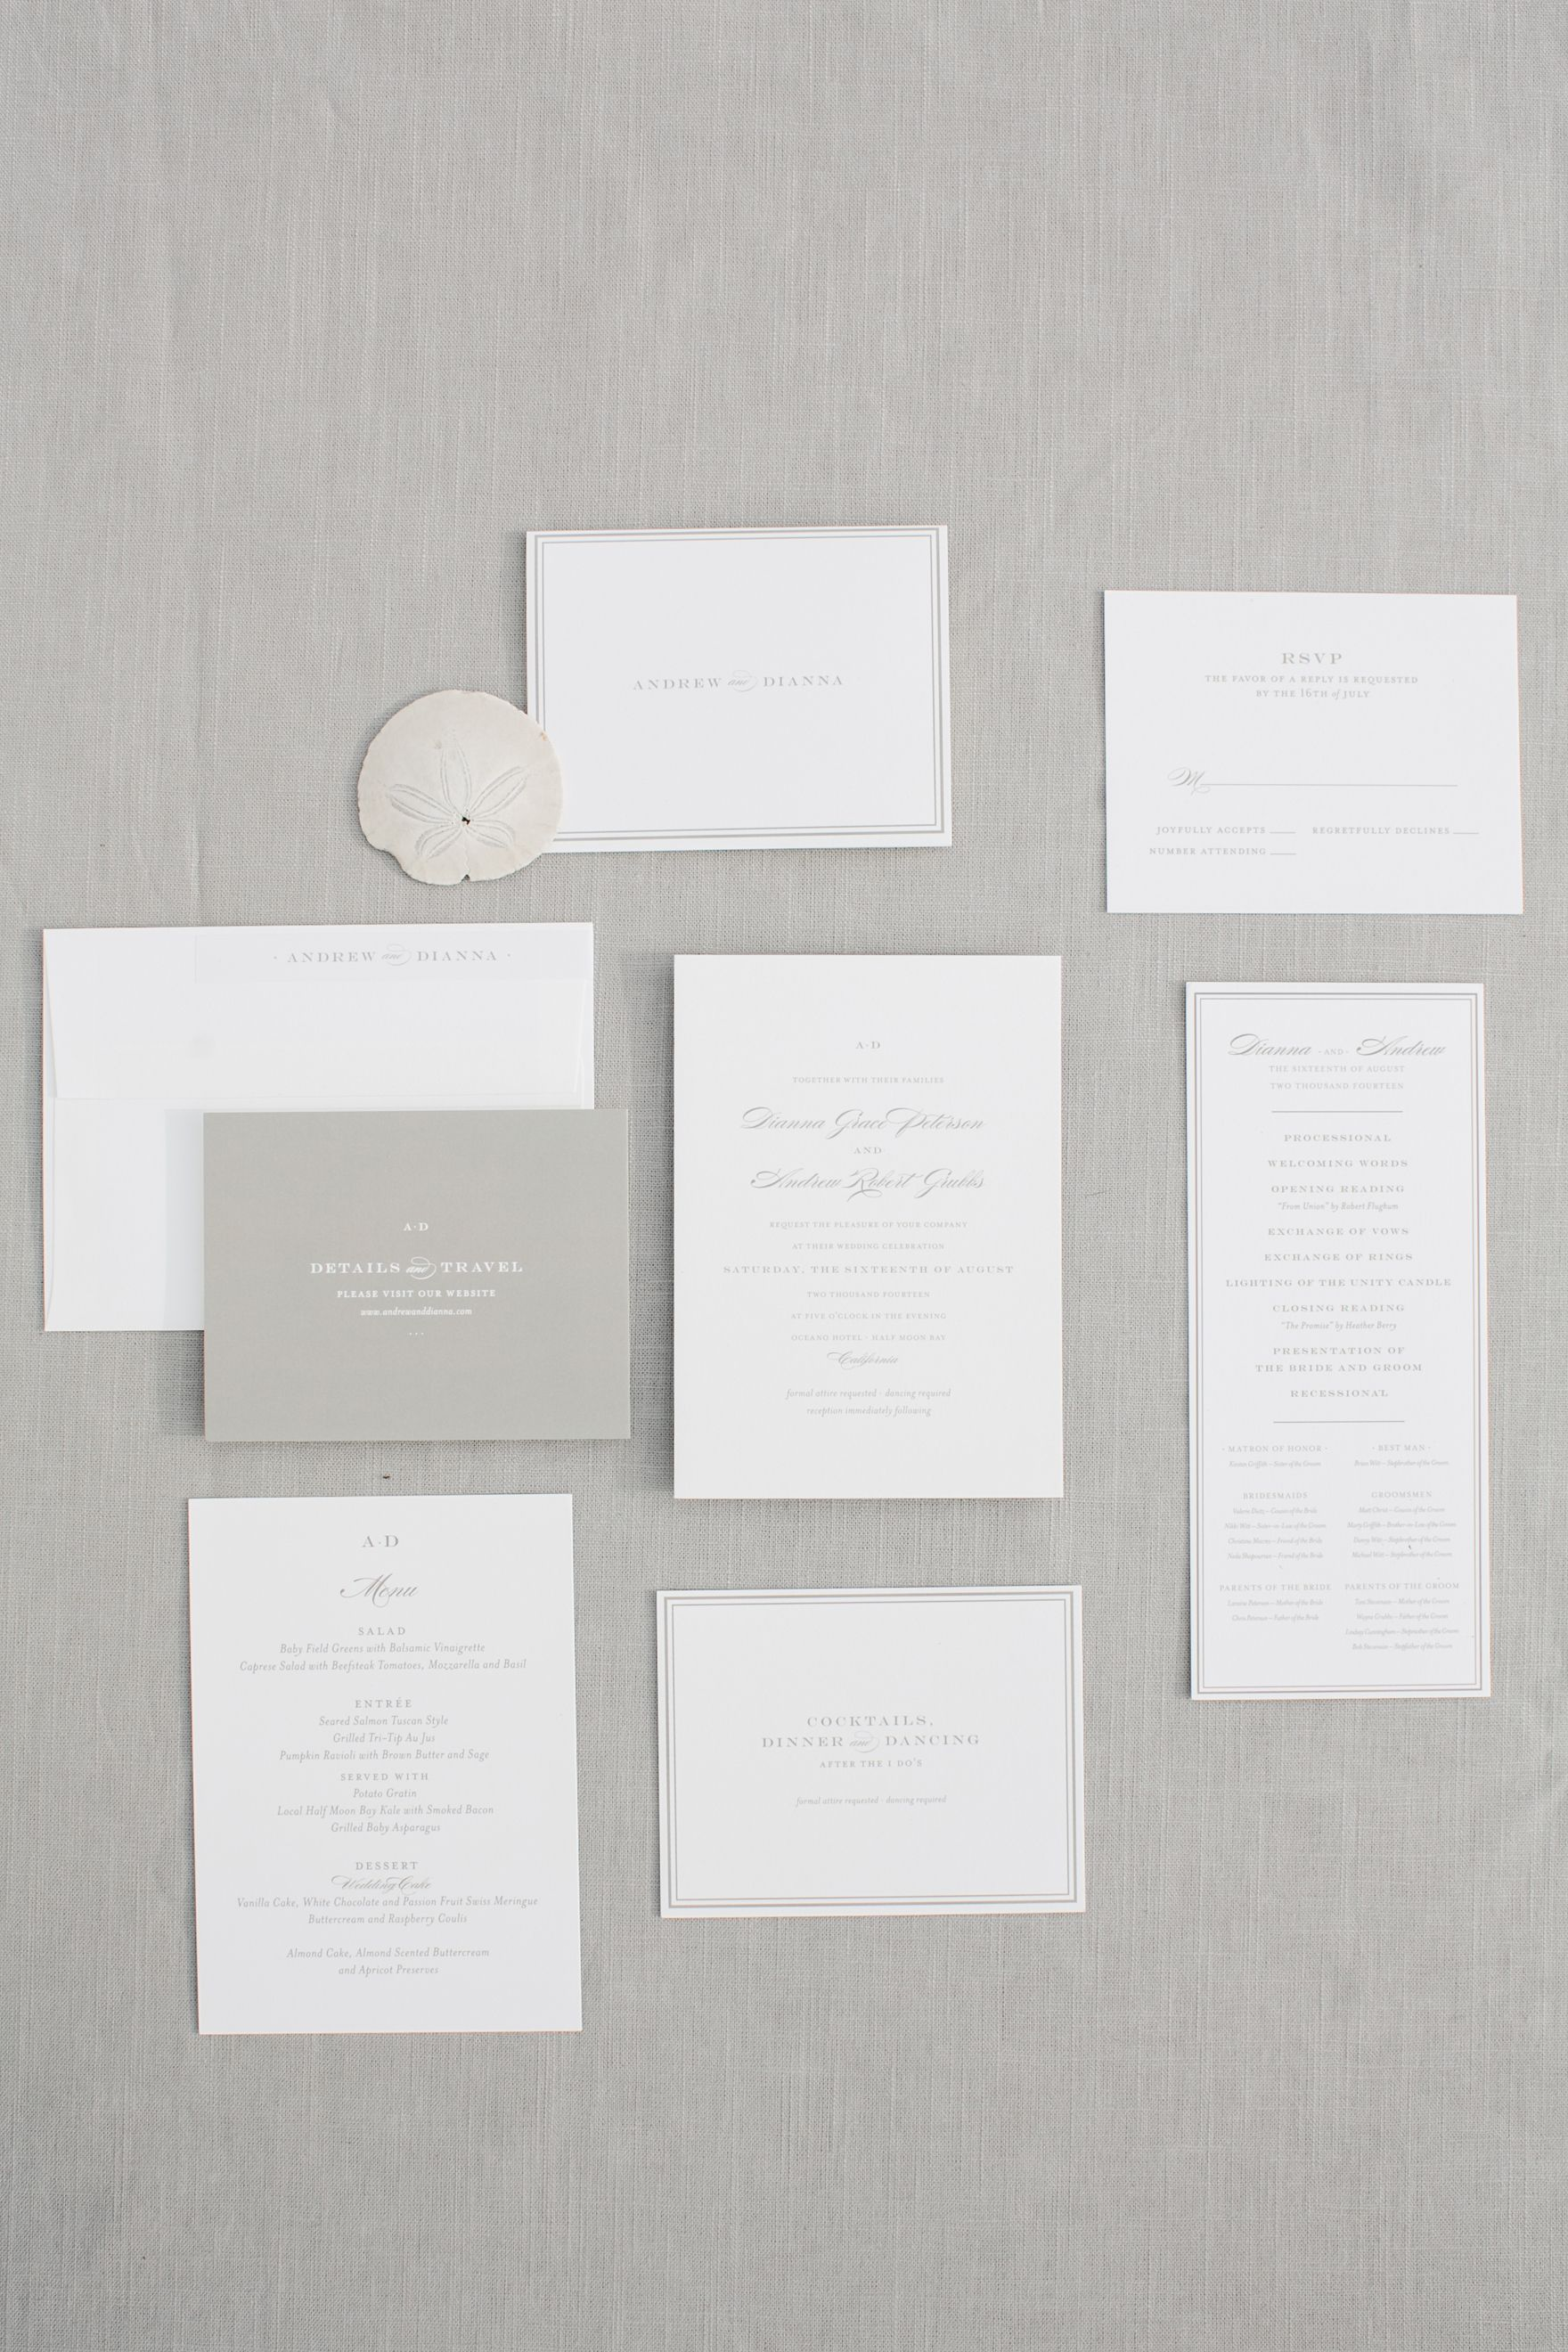 black and white wedding cards pinterest%0A Find this Pin and more on Helena e Lucas wedding  AllWhite Invitation